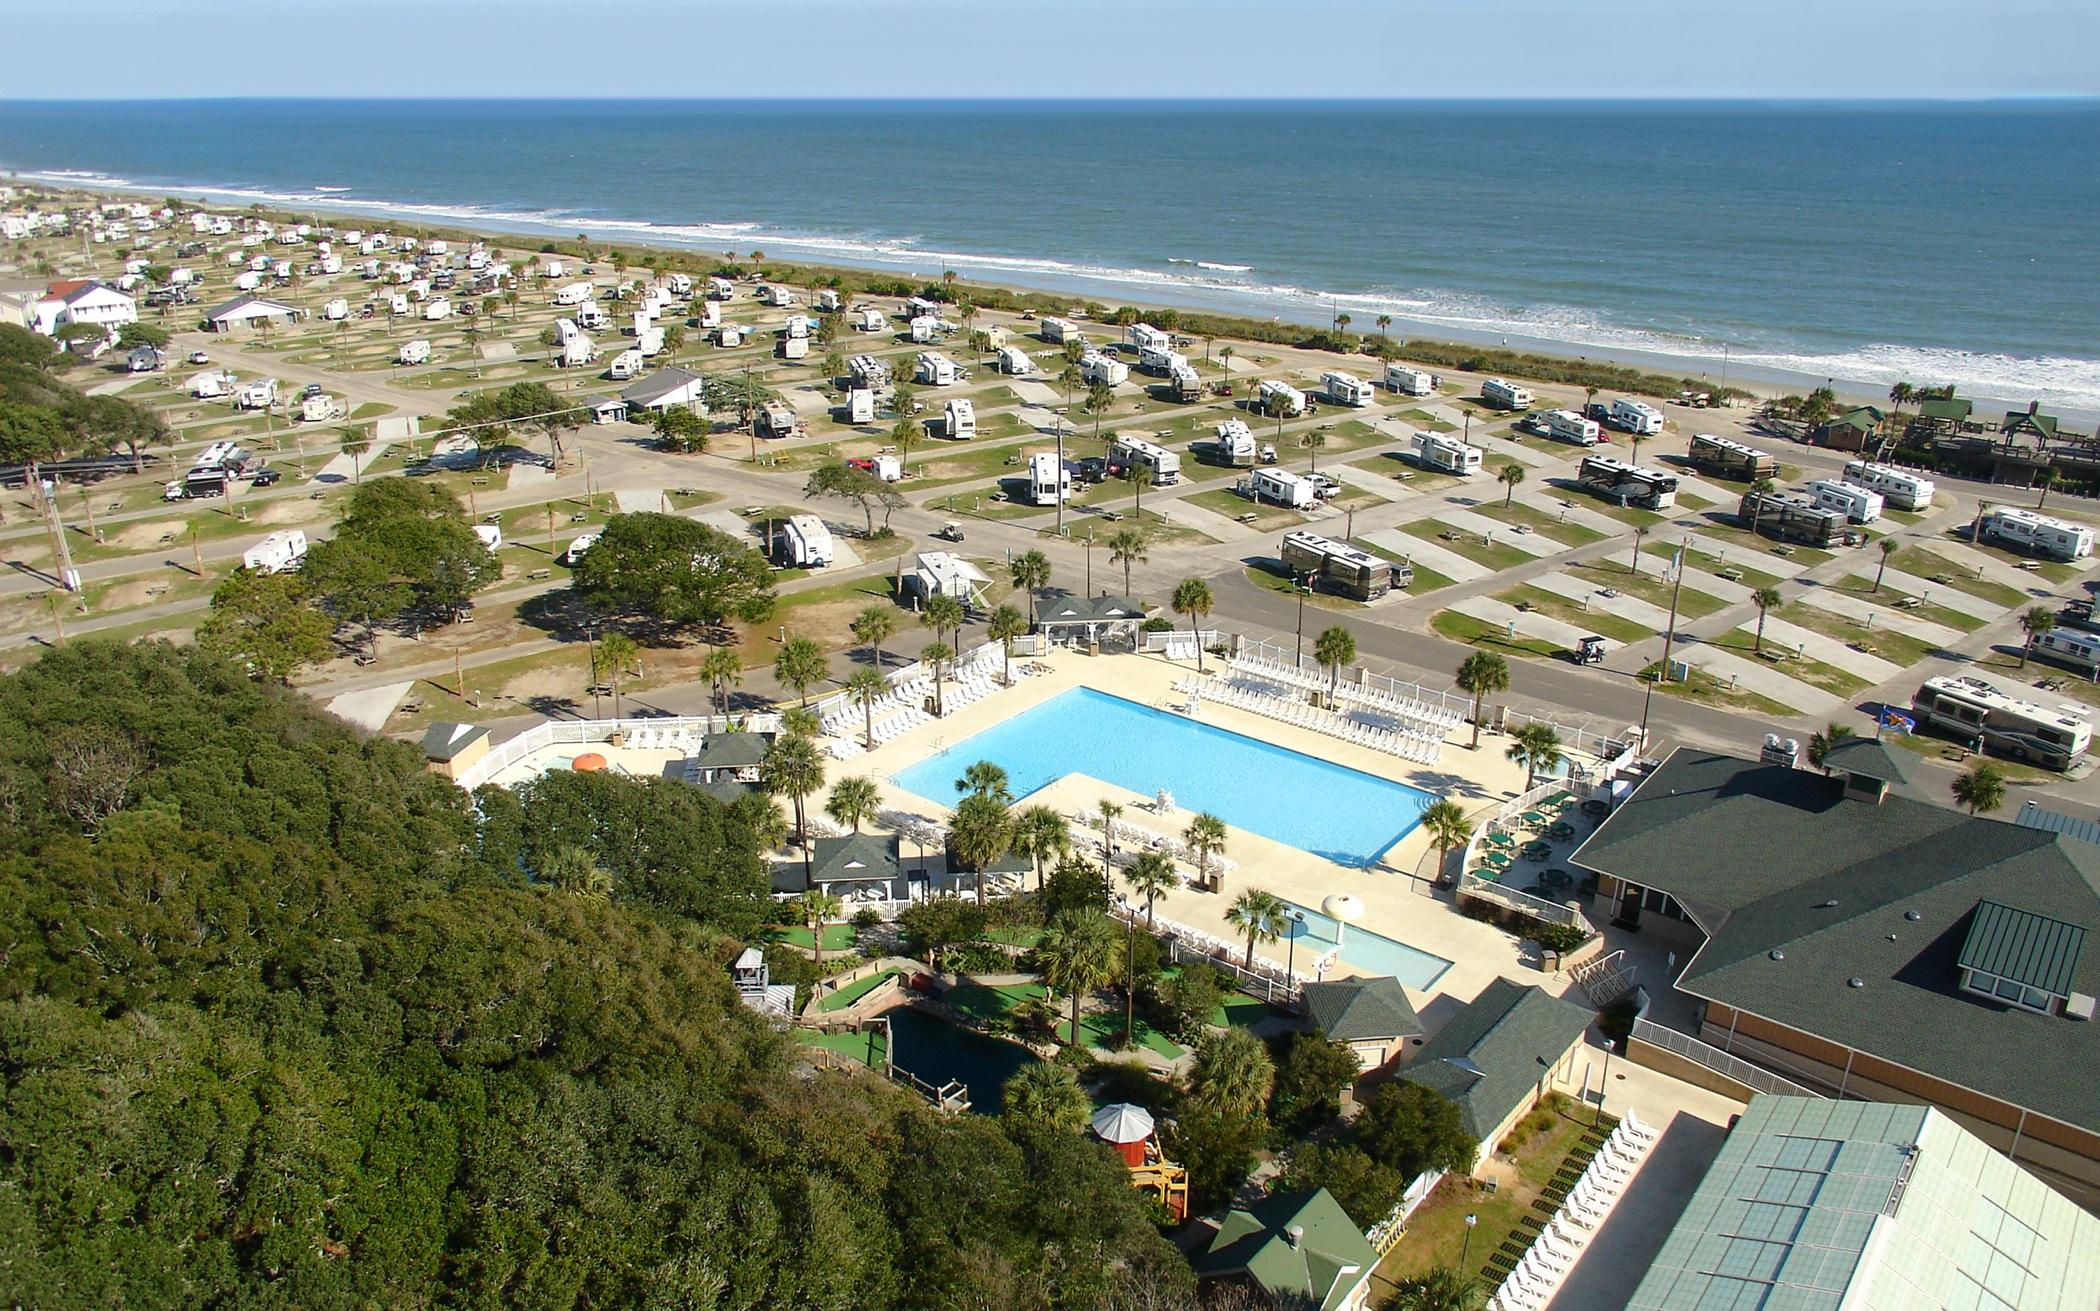 Myrtle Beach S Ocean Lakes Family Campground To Build Two